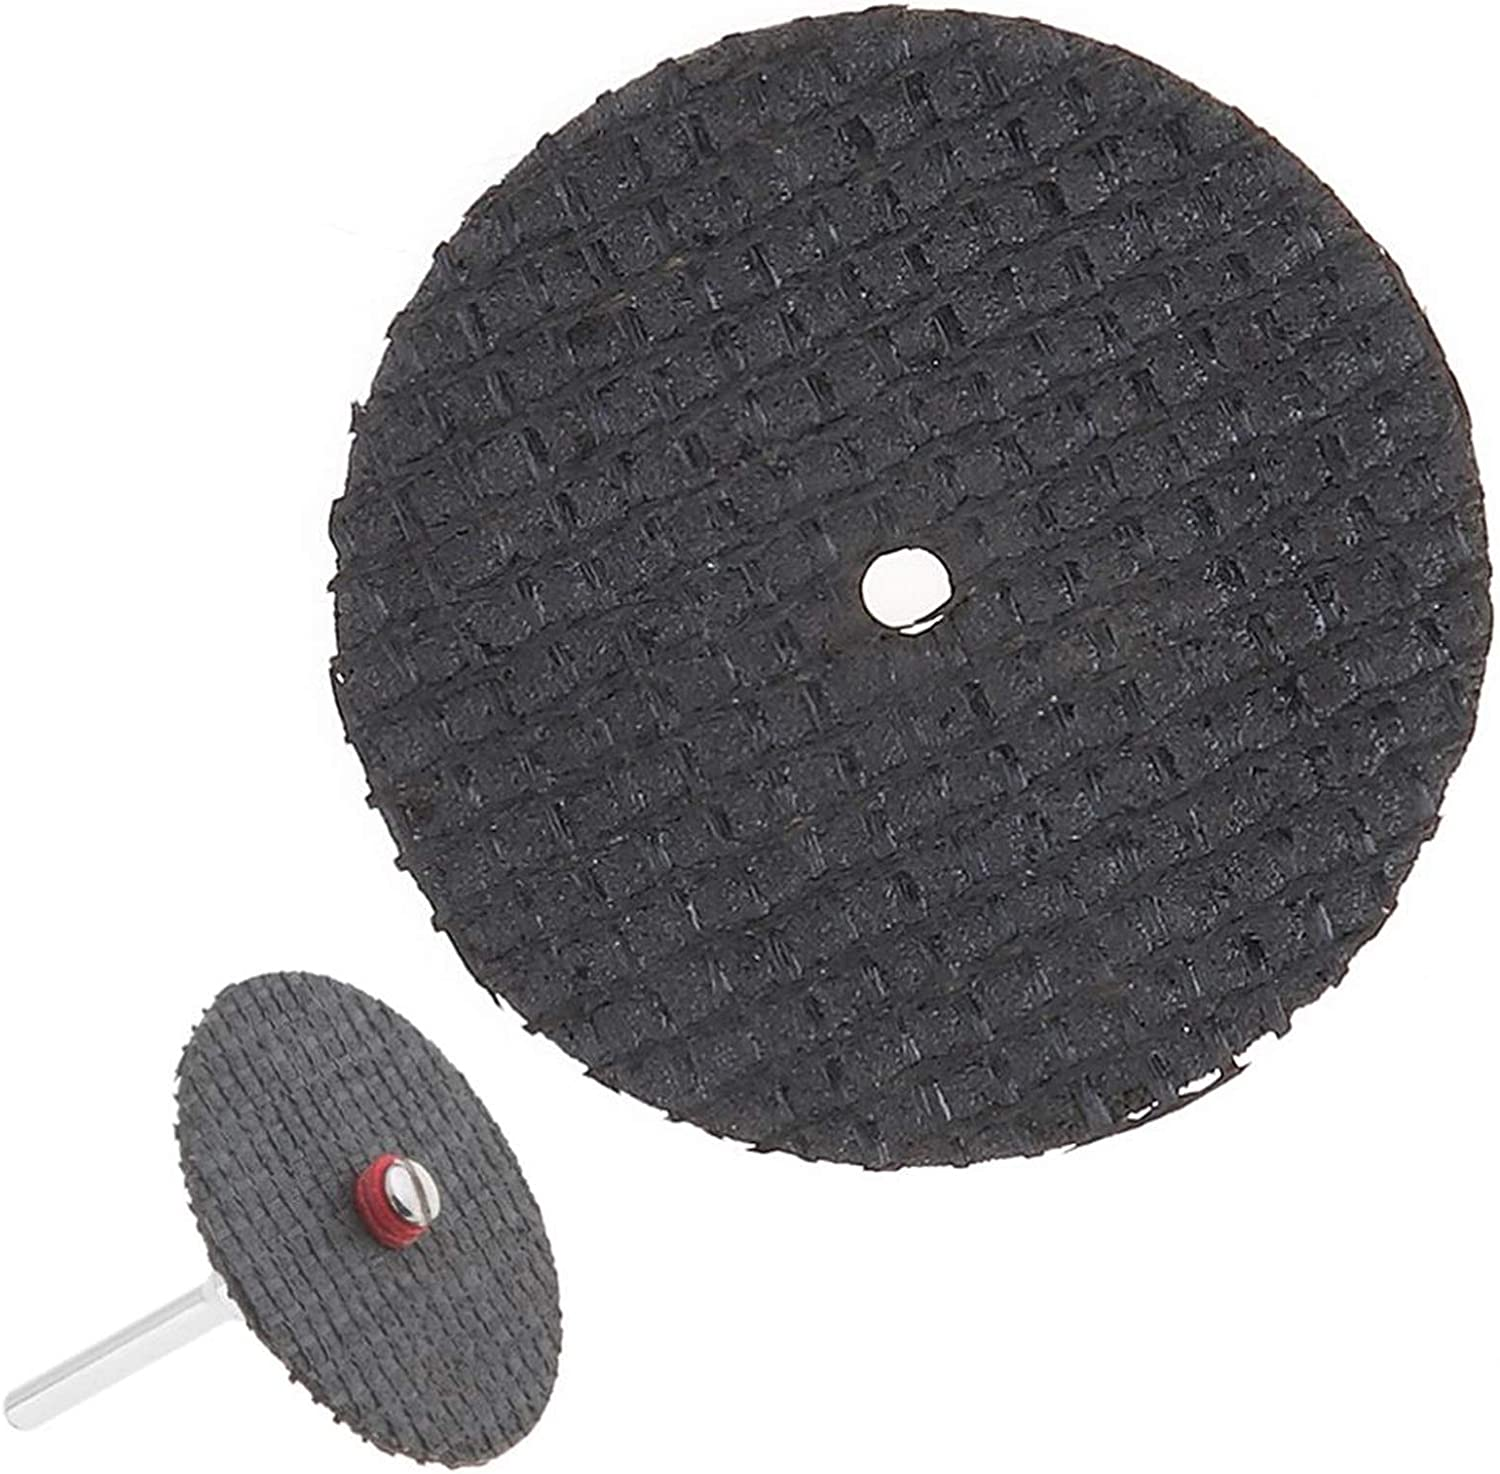 kengbi Durable and Safe Mesa Mall Mold Grinding Wheel Disc Off gift Cut Cutting